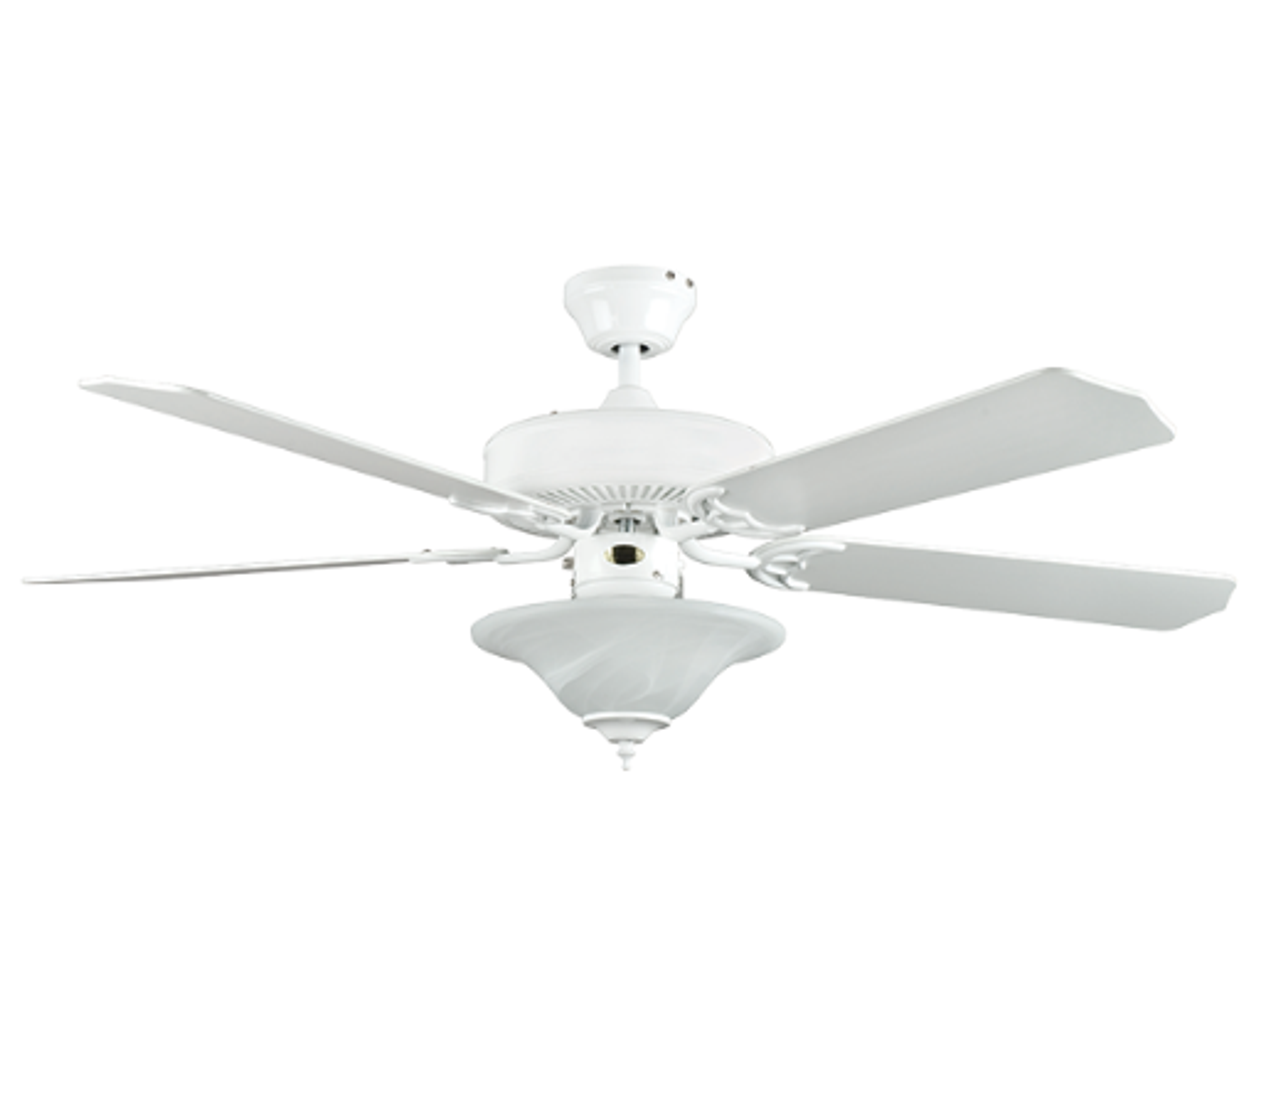 Sunset Cf52878 30 L 52 5 White Blades White Heritage Square Ceiling Fan With Light Kit